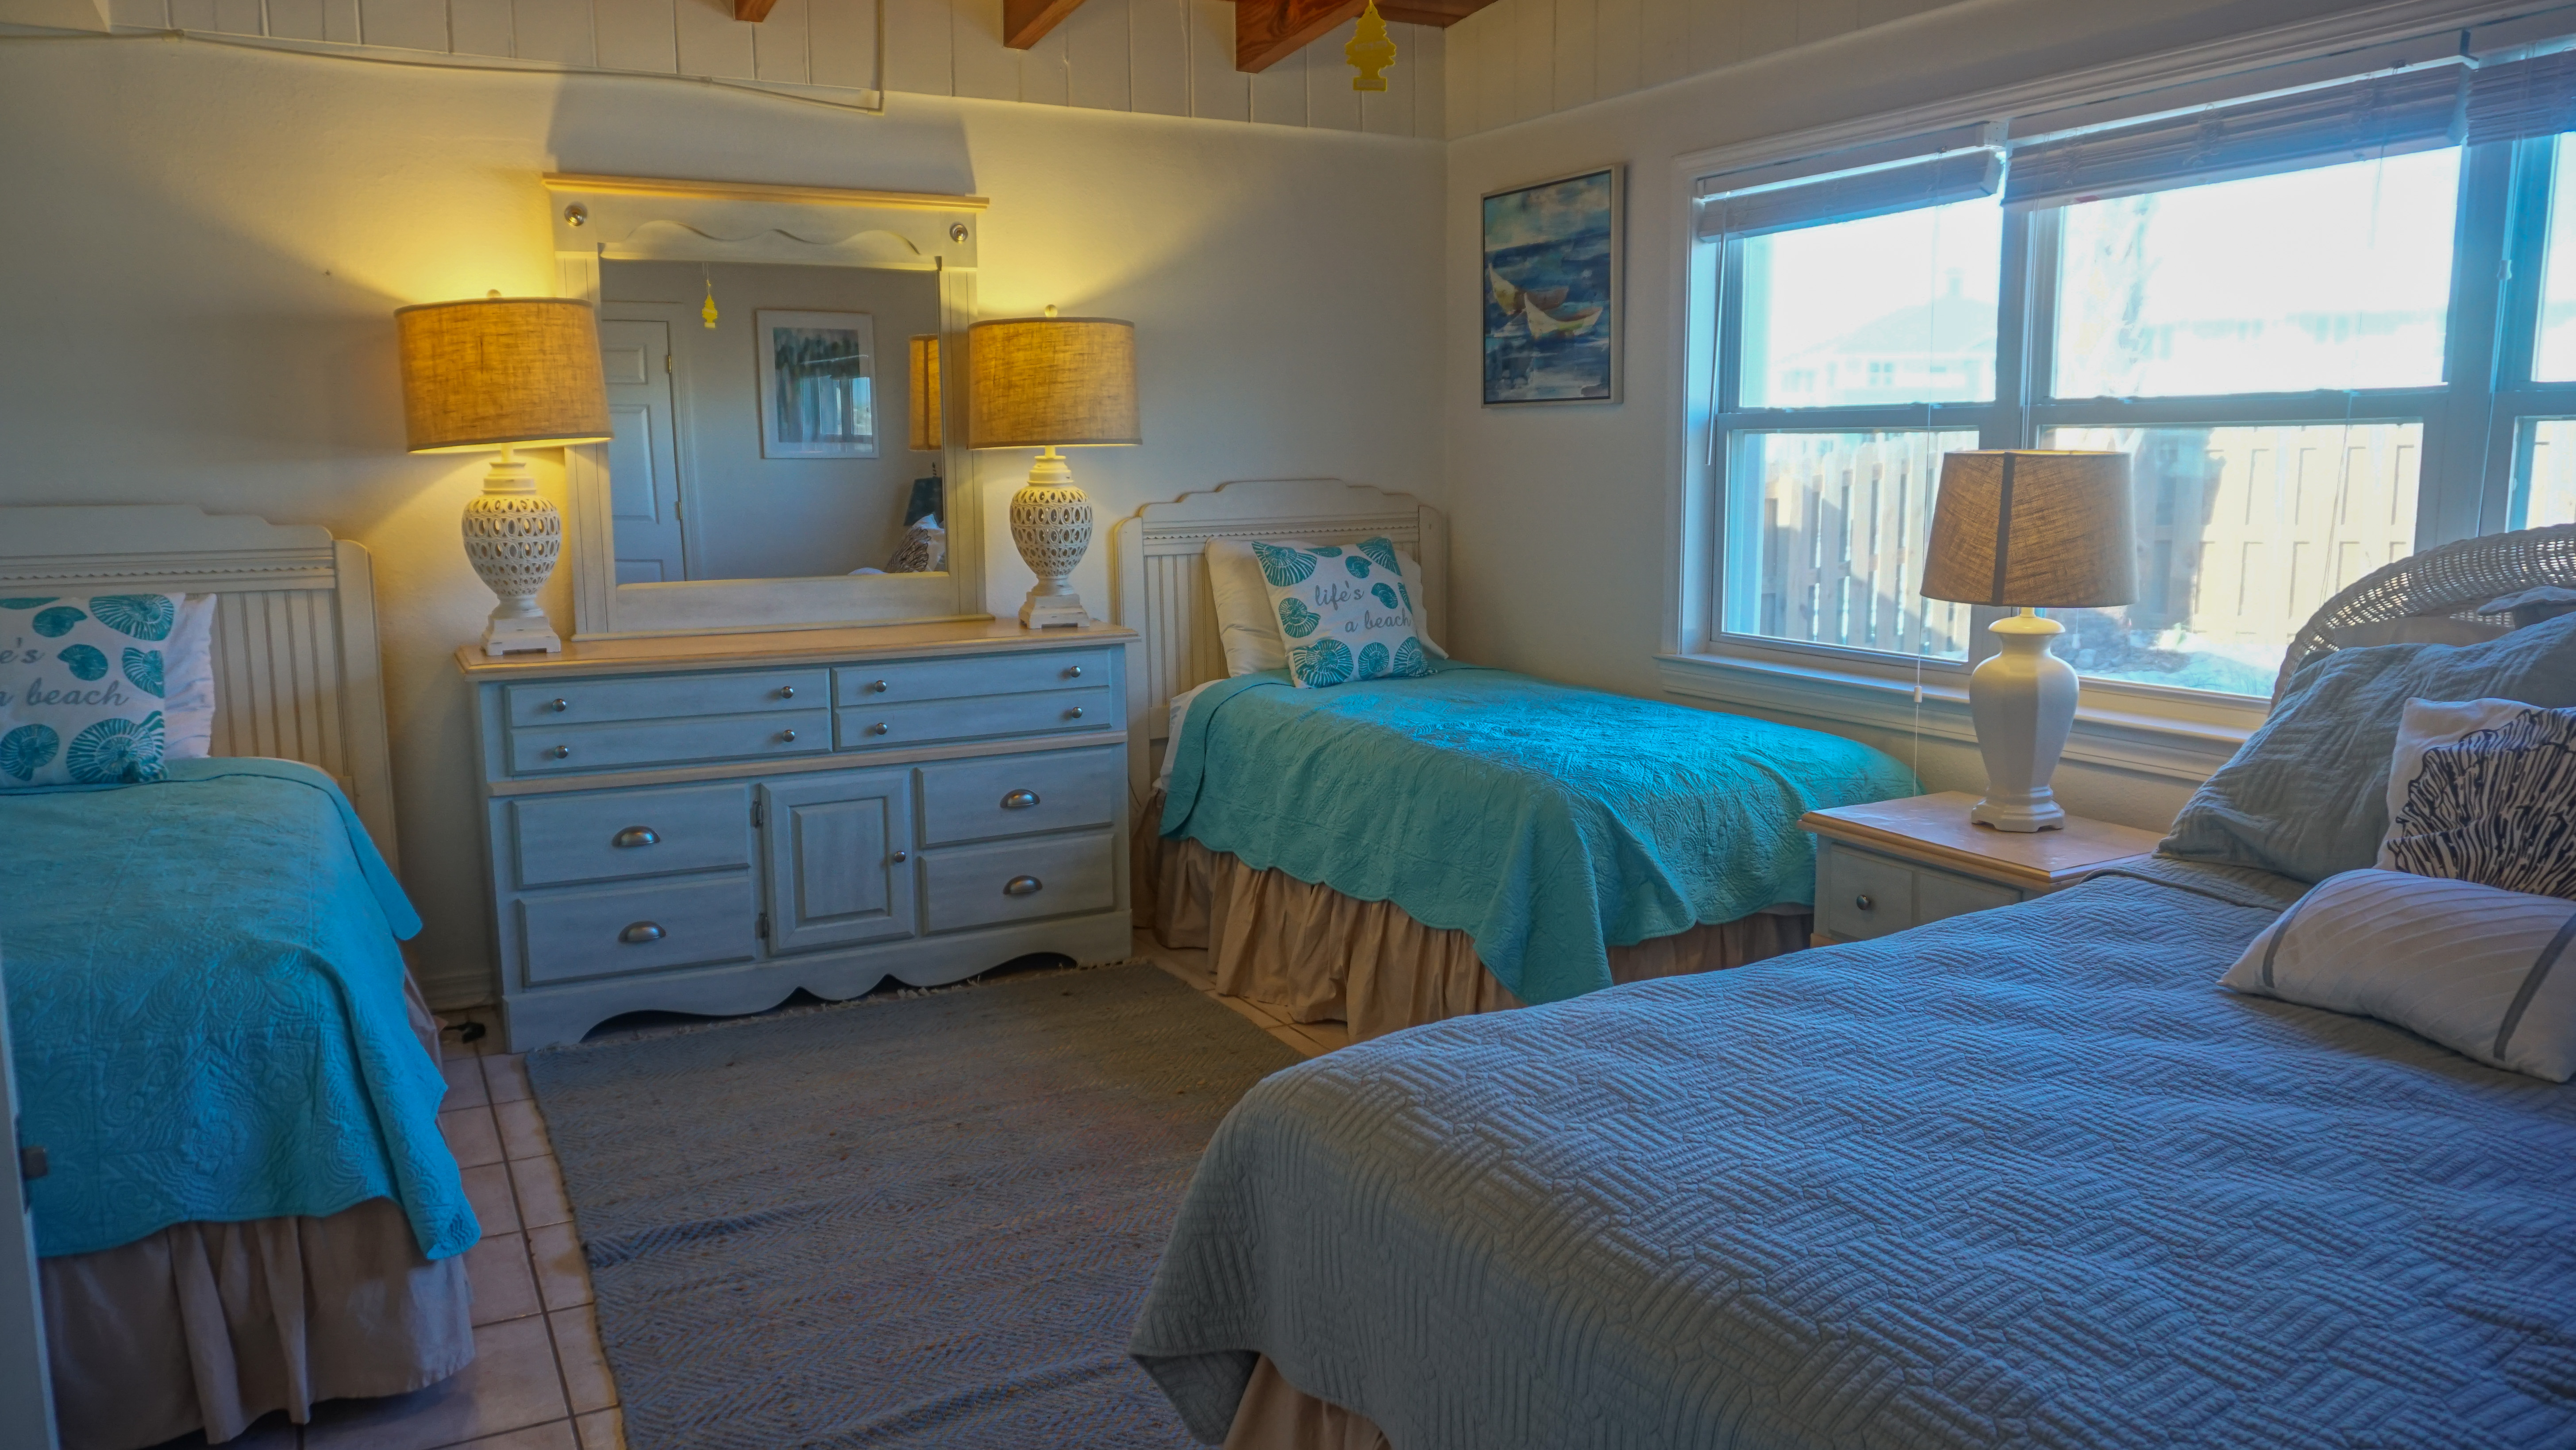 Avenida 14 - 402 House / Cottage rental in Pensacola Beach House Rentals in Pensacola Beach Florida - #29